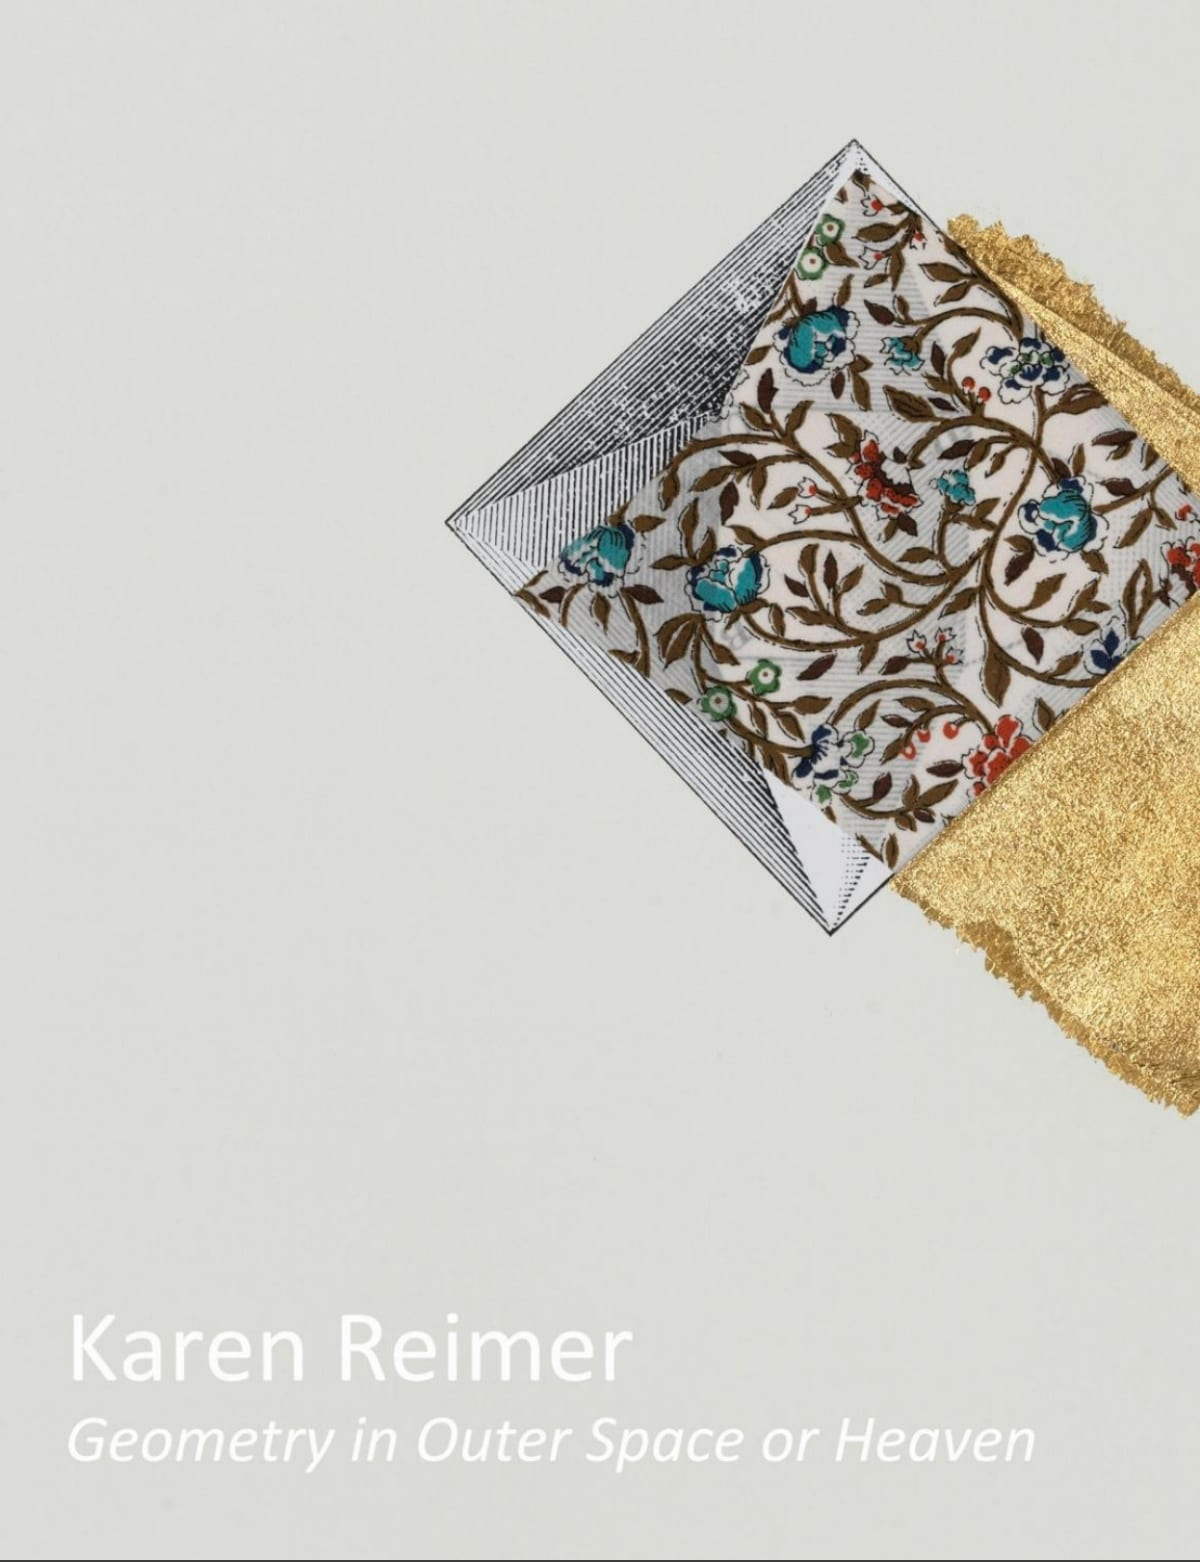 Karen Reimer: Geometry in Outer Space or Heaven